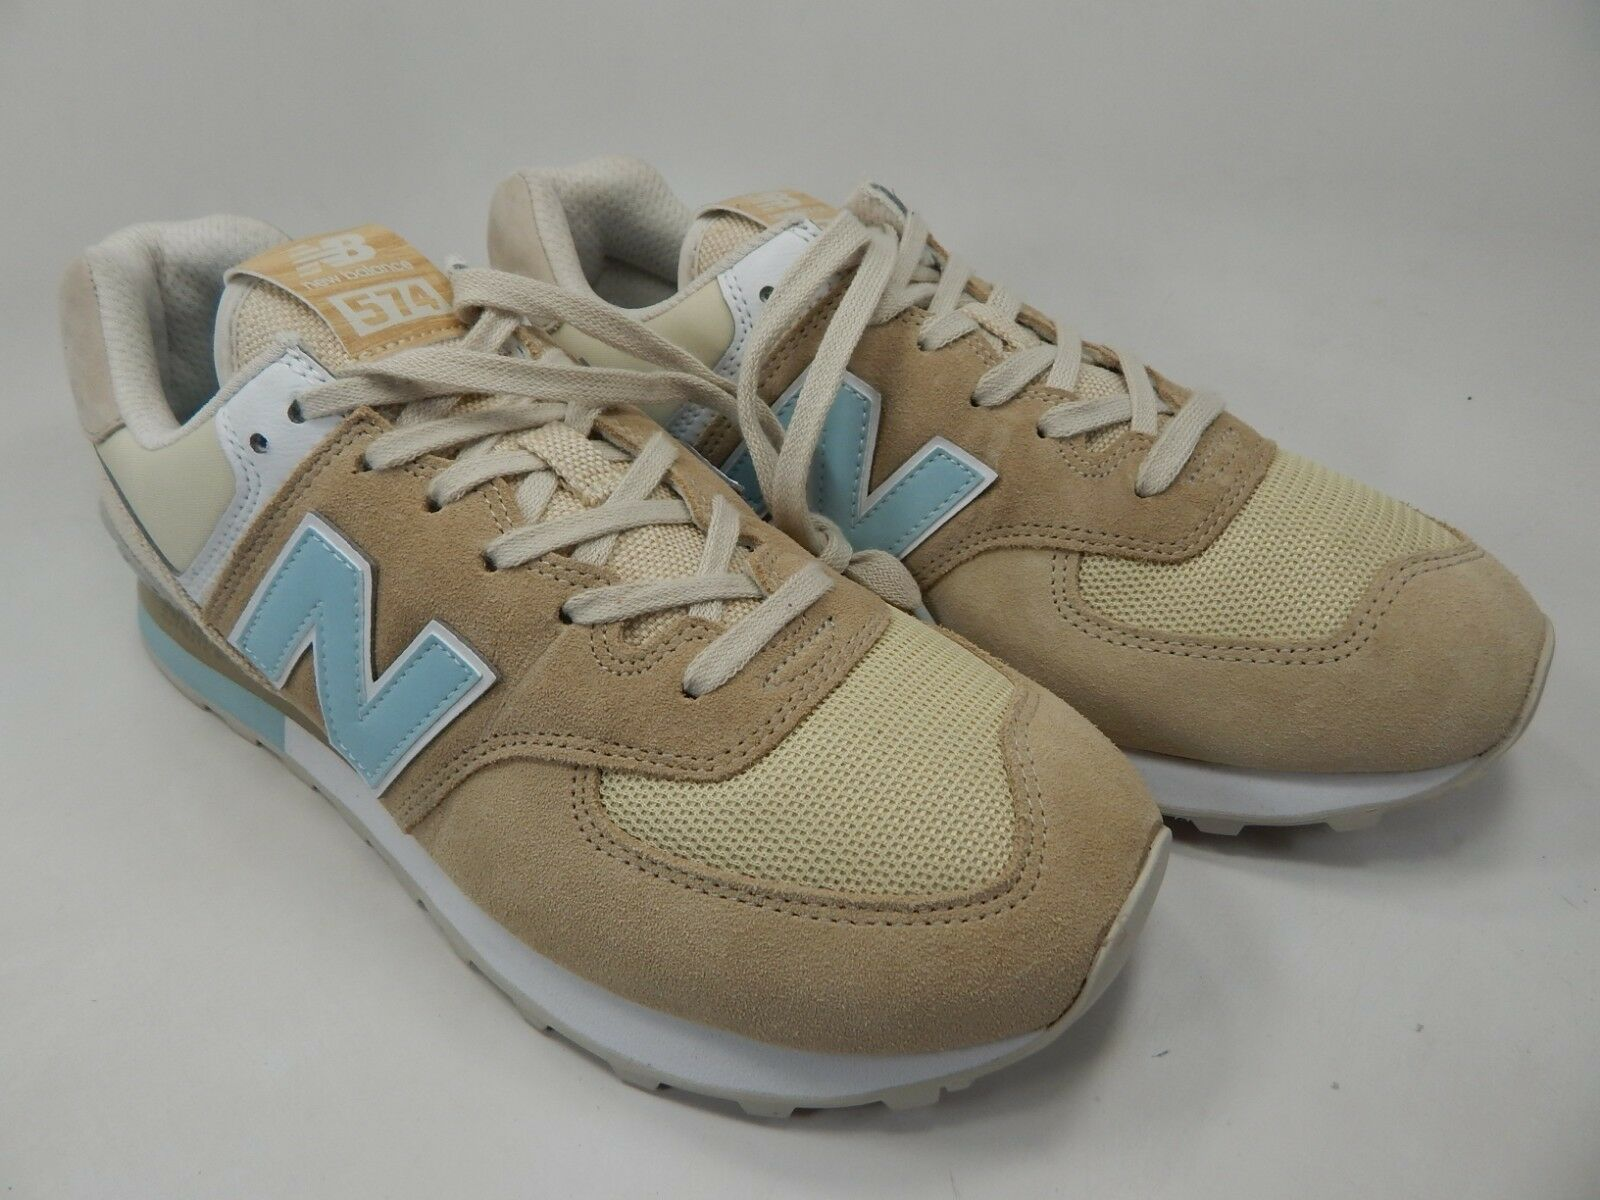 New Balance 574 Classic Size 9.5 M (D) Men's Sneakers shoes ML574BSB